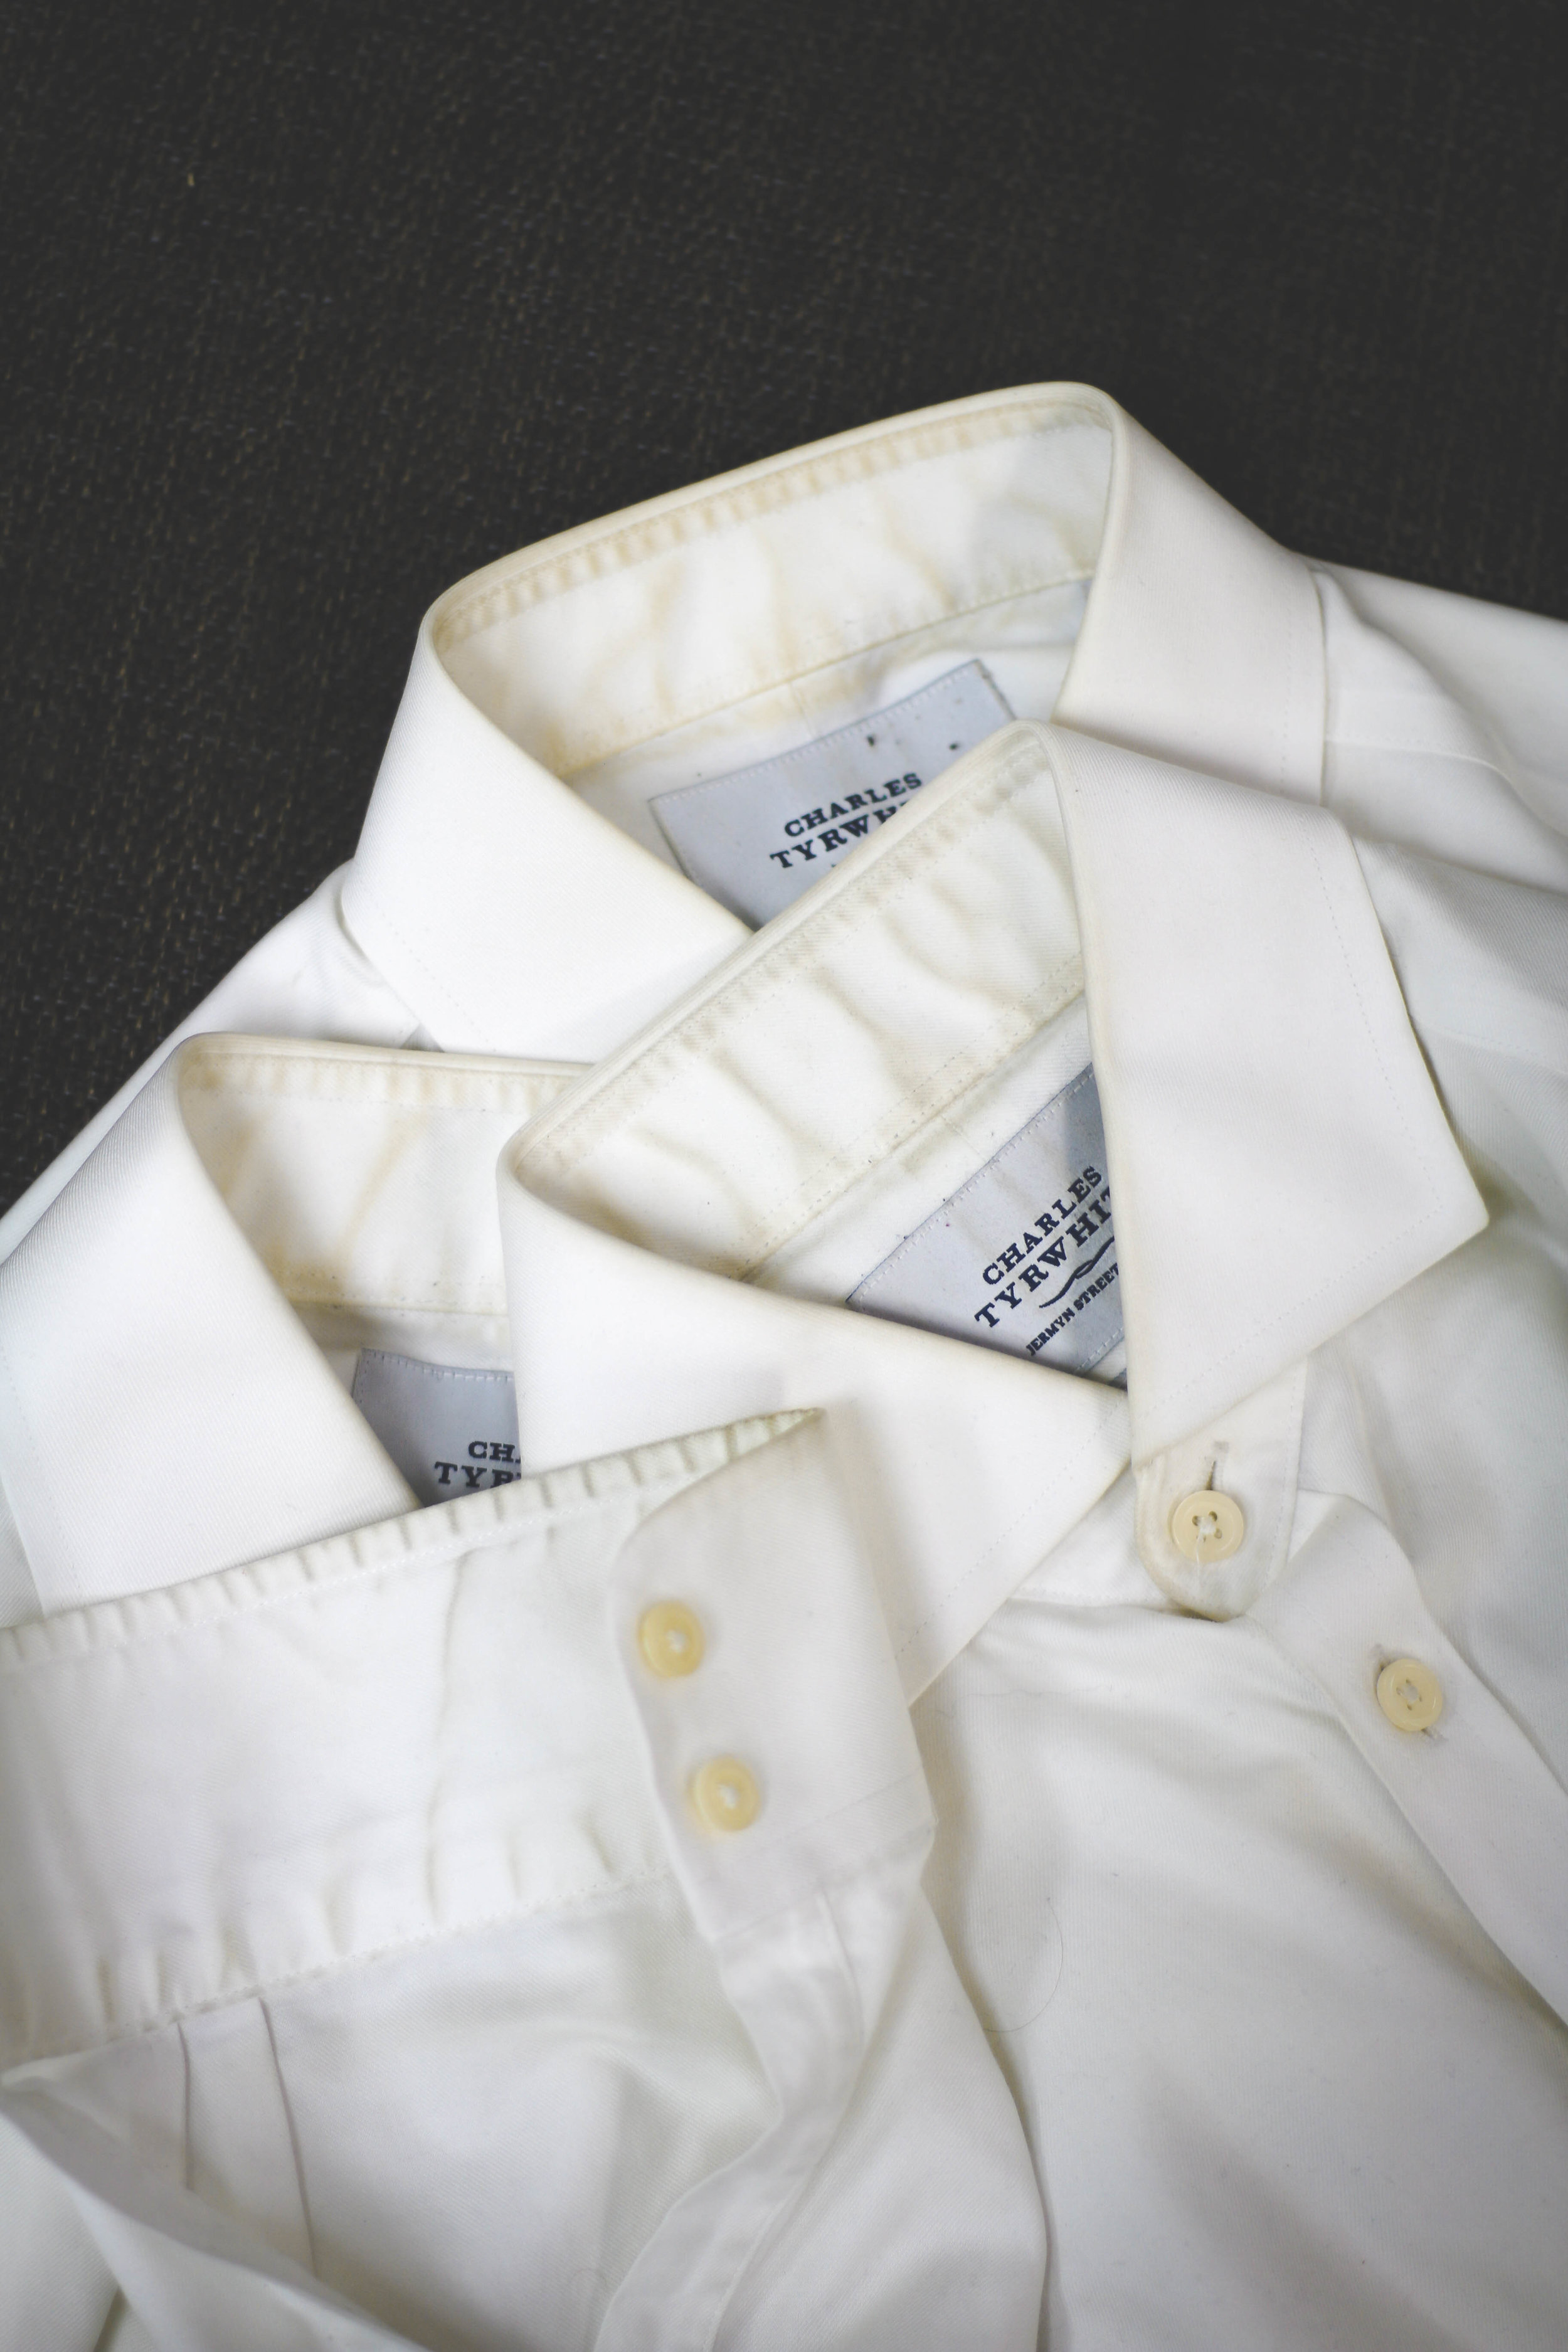 How To Remove Yellow Sweat Stains From White Shirts The Mensch